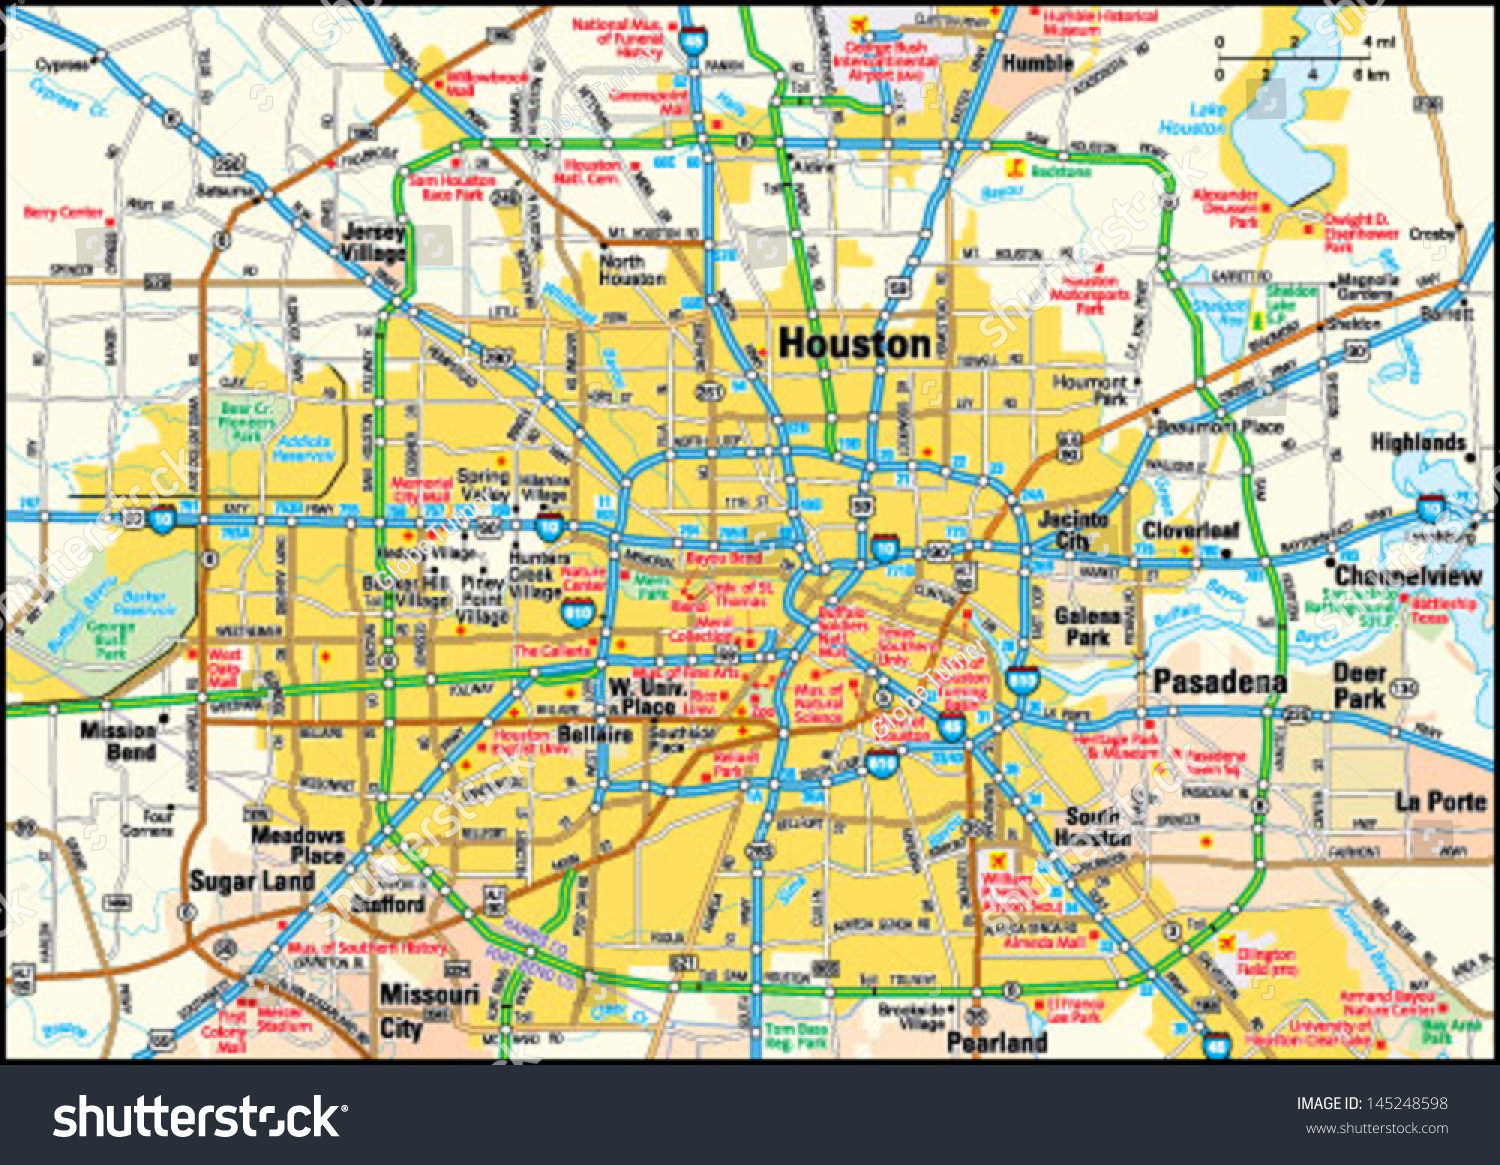 Houston Texas Area Map | Business Ideas 2013